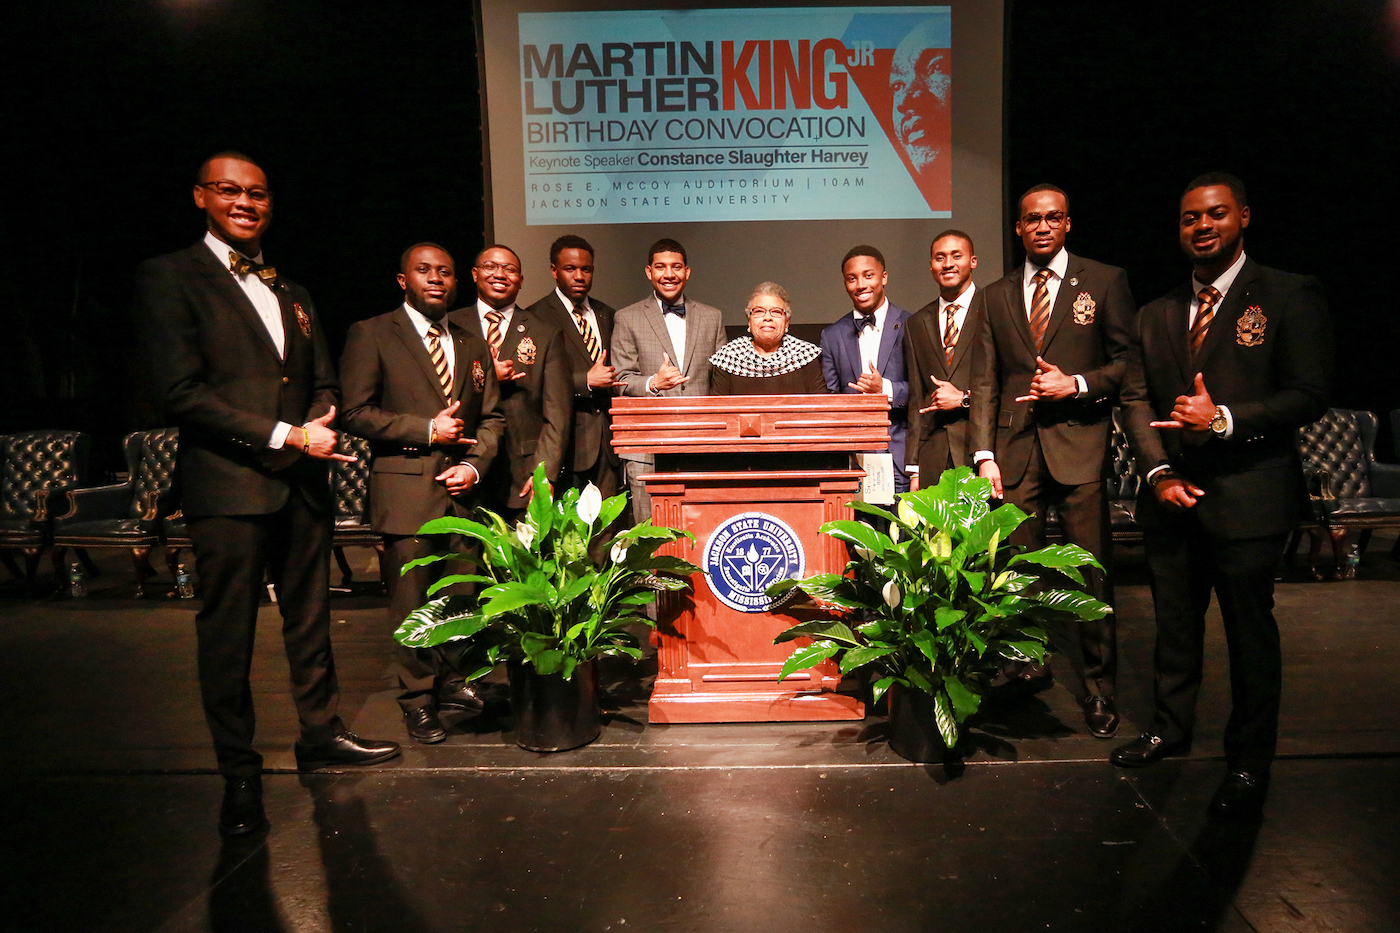 Members of Alpha Phi Alpha Fraternity, Inc. honor their fraternity brother Dr. Martin Luther King Jr. by serving as ushers at the MLK Convocation. (Photo by Aron Smith/JSU)